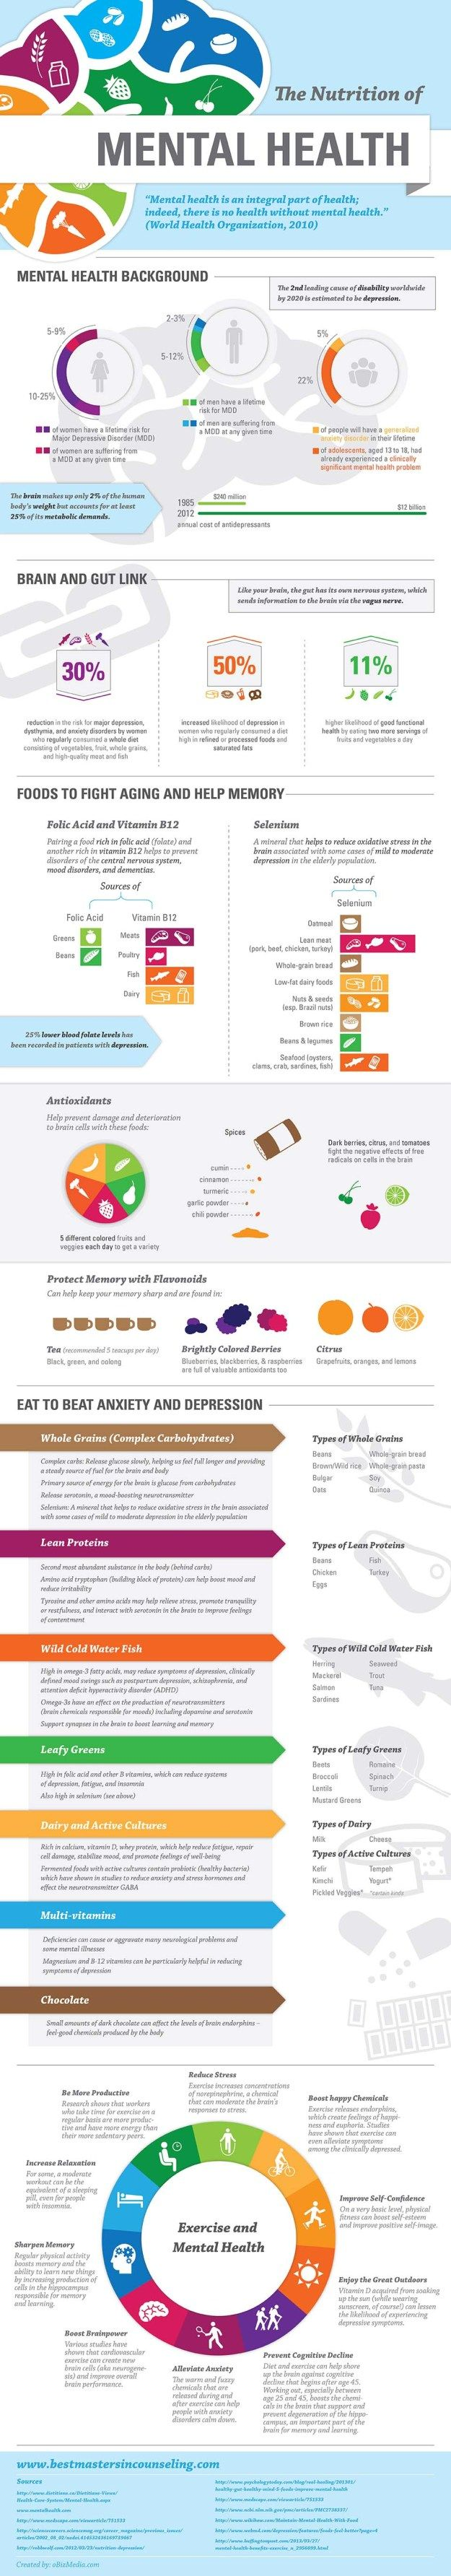 Nutrition of Mental Health. #mentalhealth #infographic www.NewBeginningsDetox.com